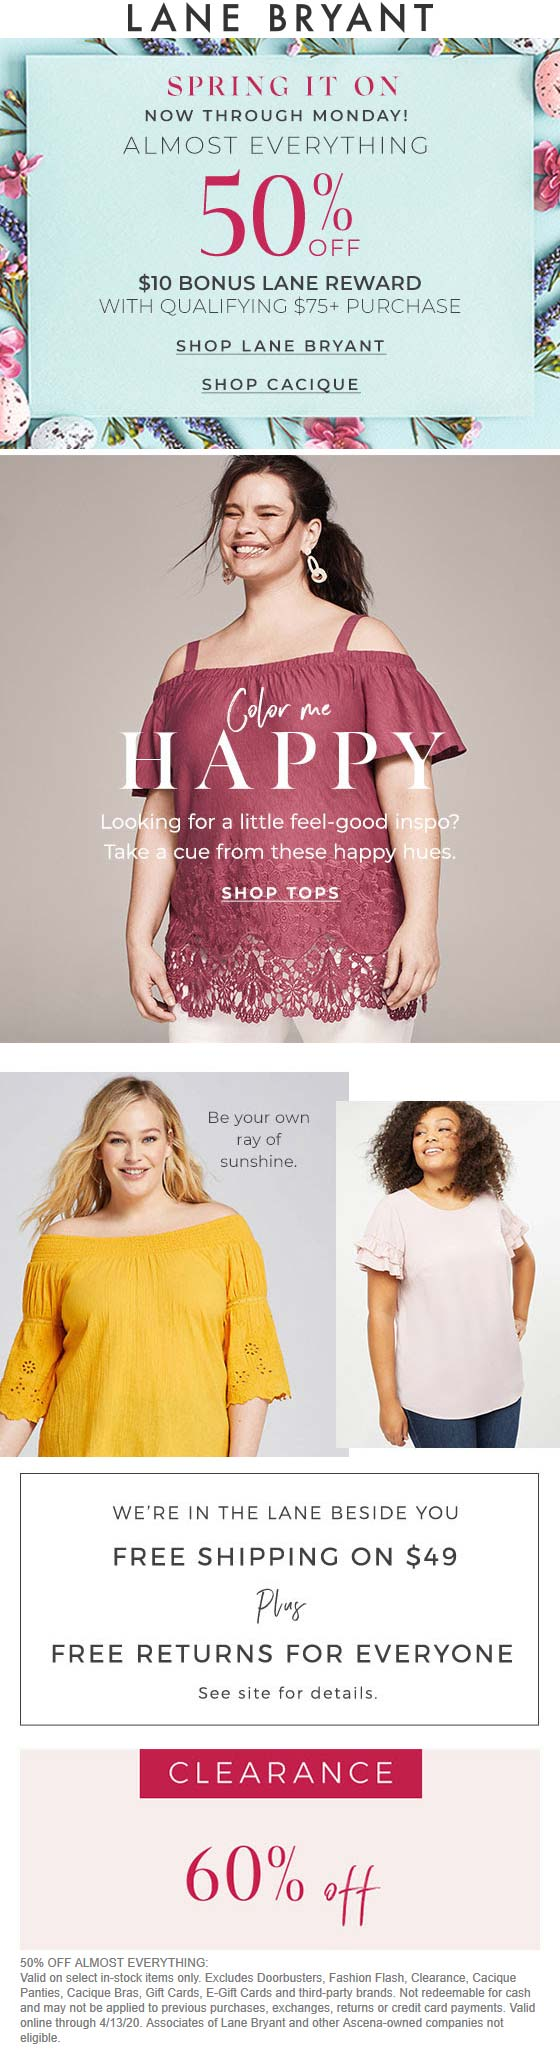 Lane Bryant coupons & promo code for [October 2020]